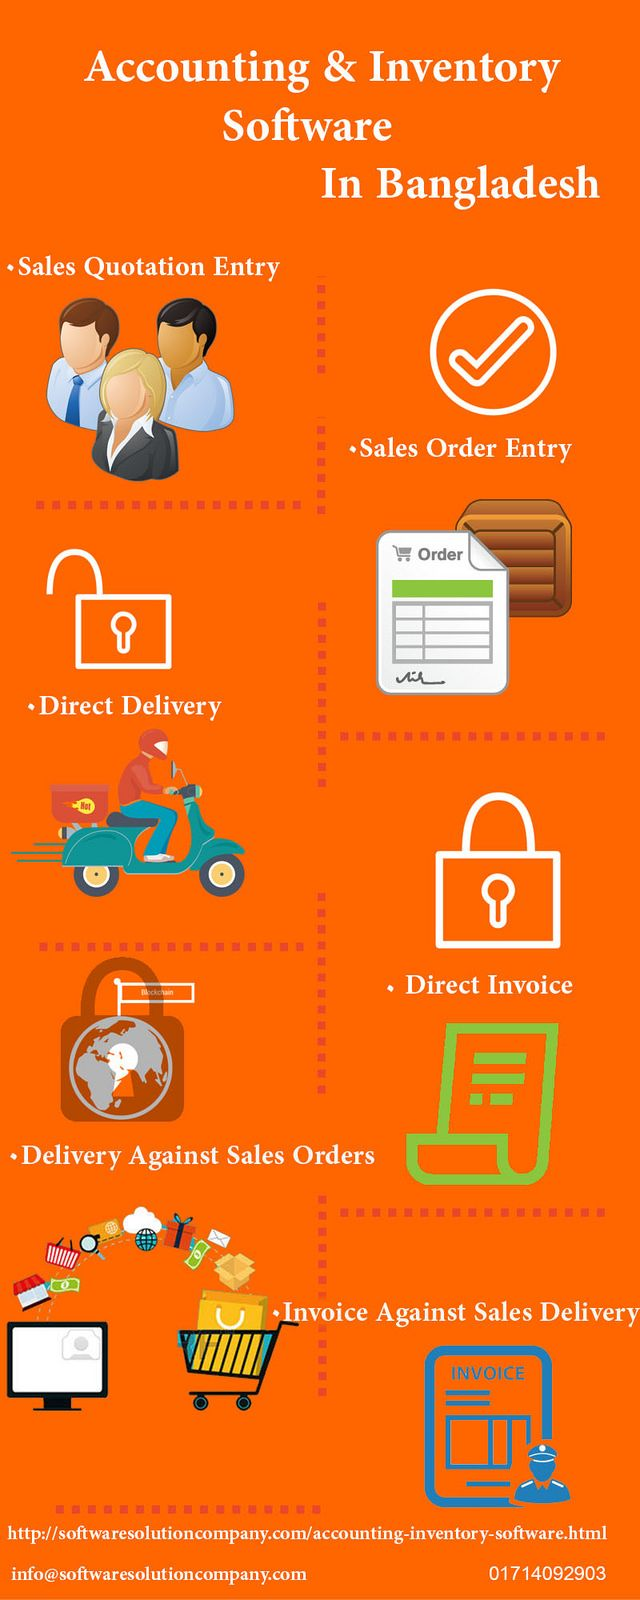 https://flic.kr/p/SBdtqh | Accounting & Inventory Management Software in Bangladesh | Software Solution Company offering ✓Accounting & Inventory software management ✓ retail accounting software ✓accounting software in Bangladesh.